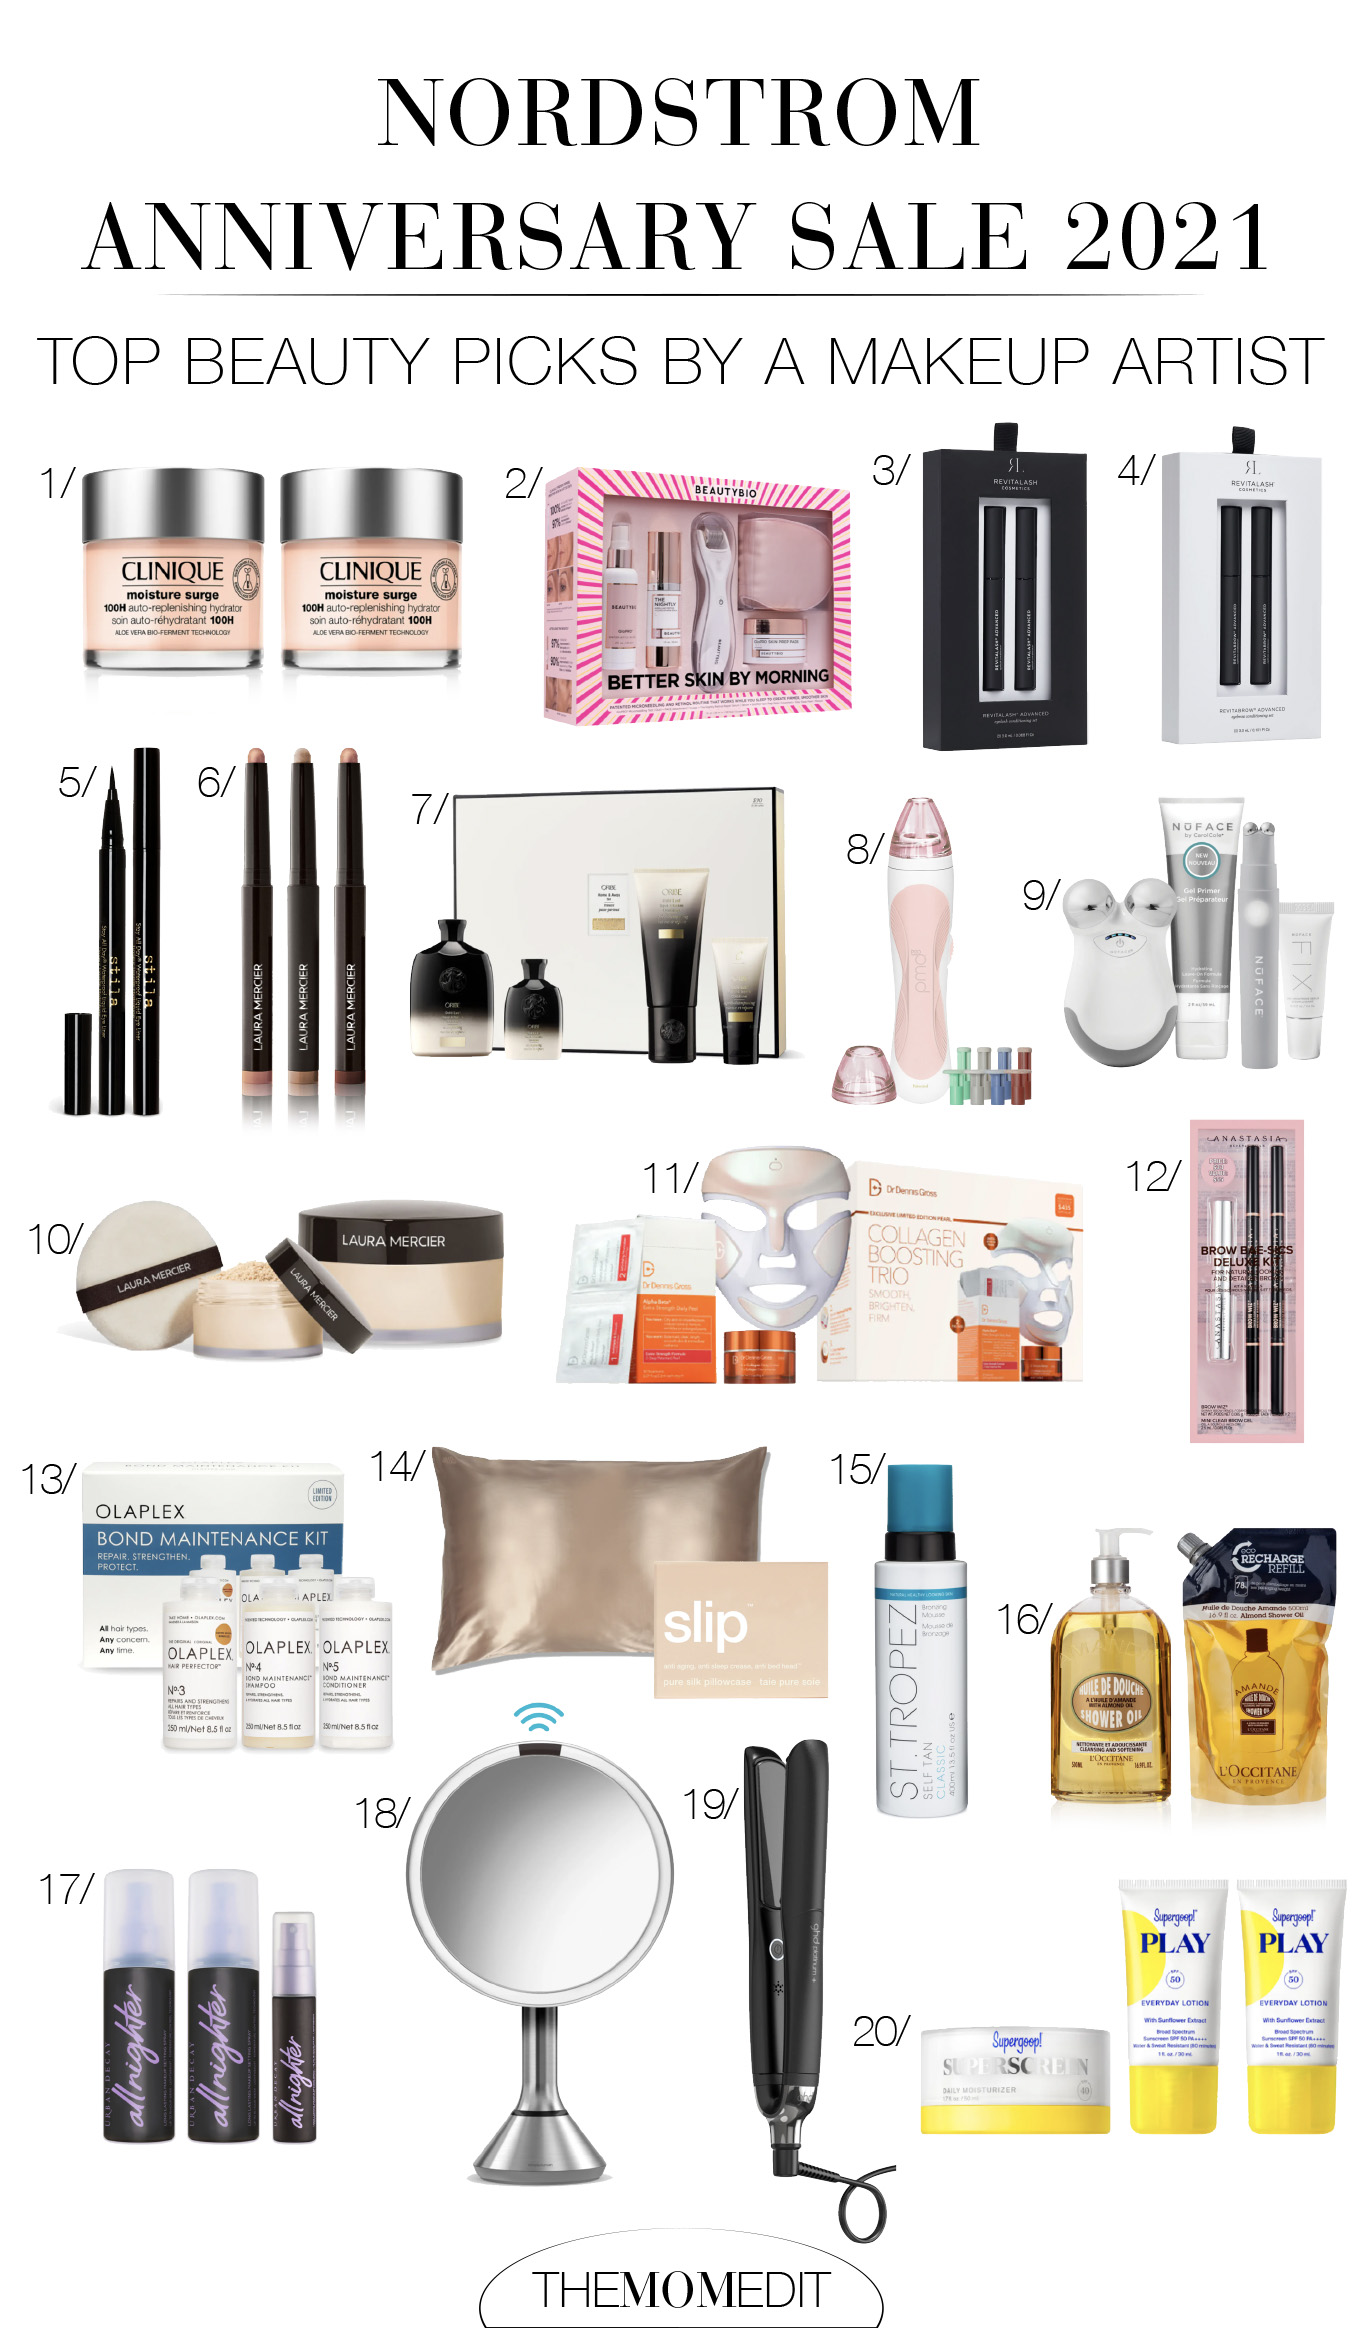 I was thrilled to see all the beauty deals included in this year's Nordstrom Anniversary Sale! As a makeup artist, I had to put together a list of my top favorites.